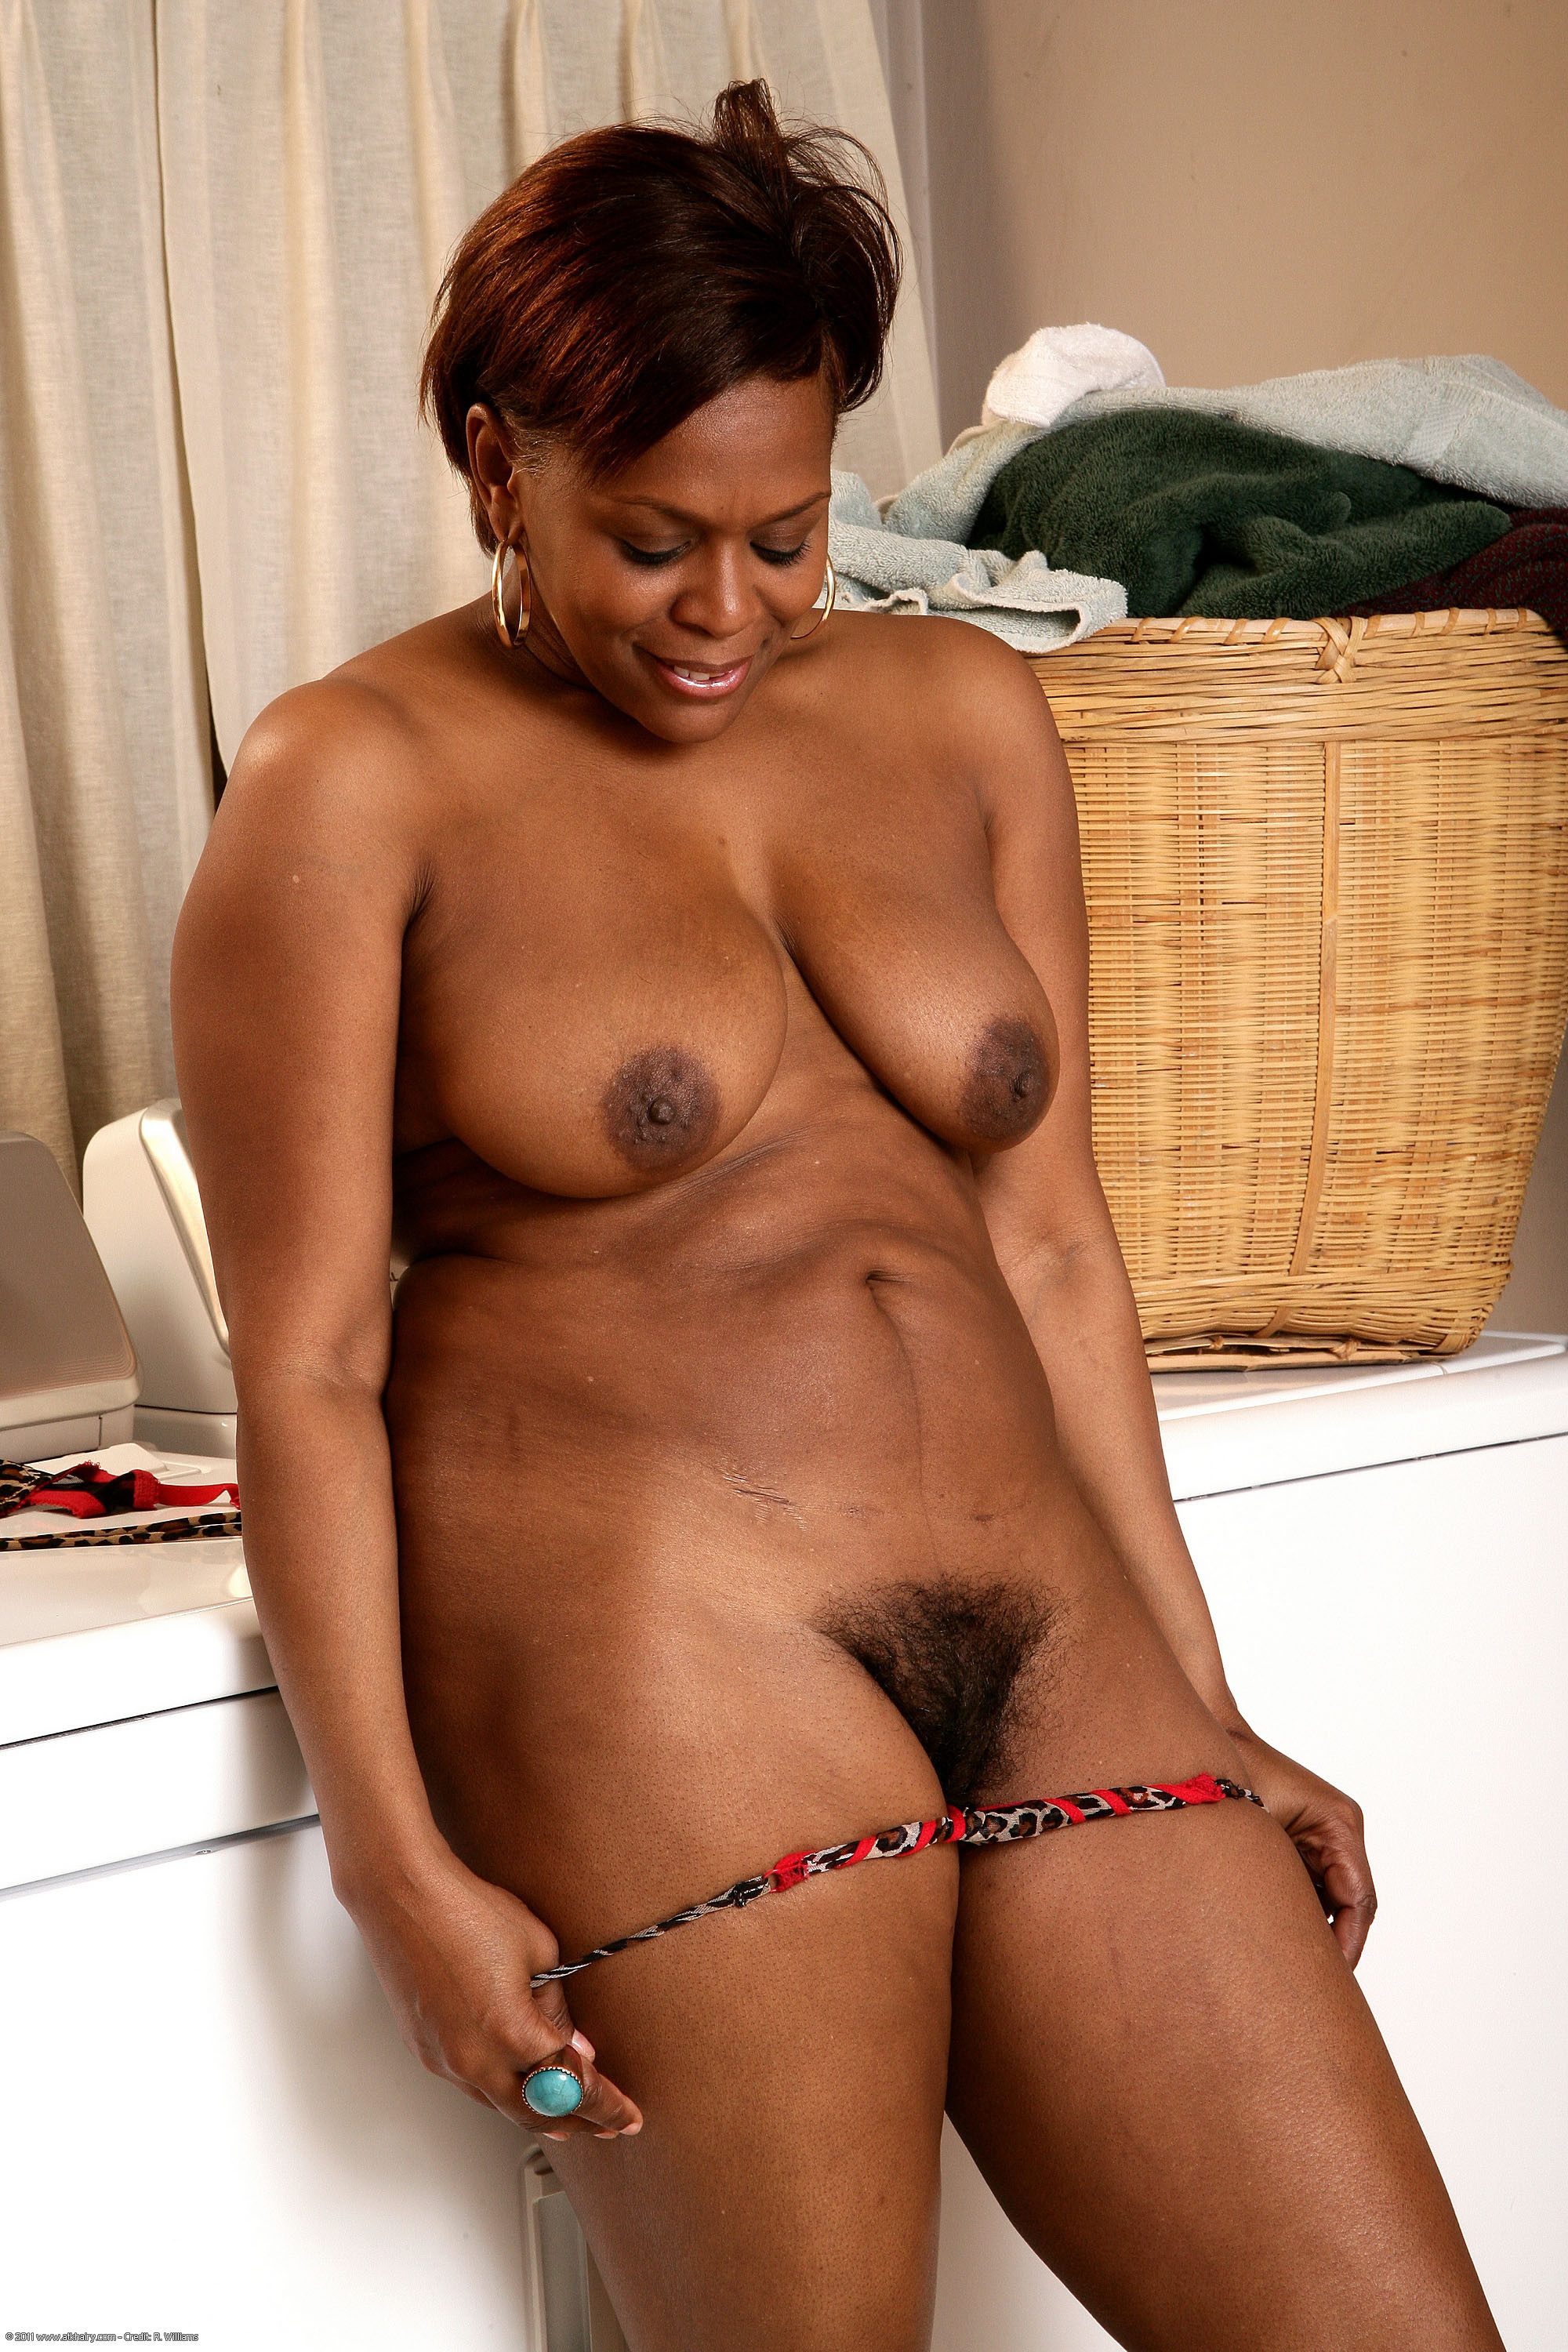 ebony old lady porn - free chatting dating site!